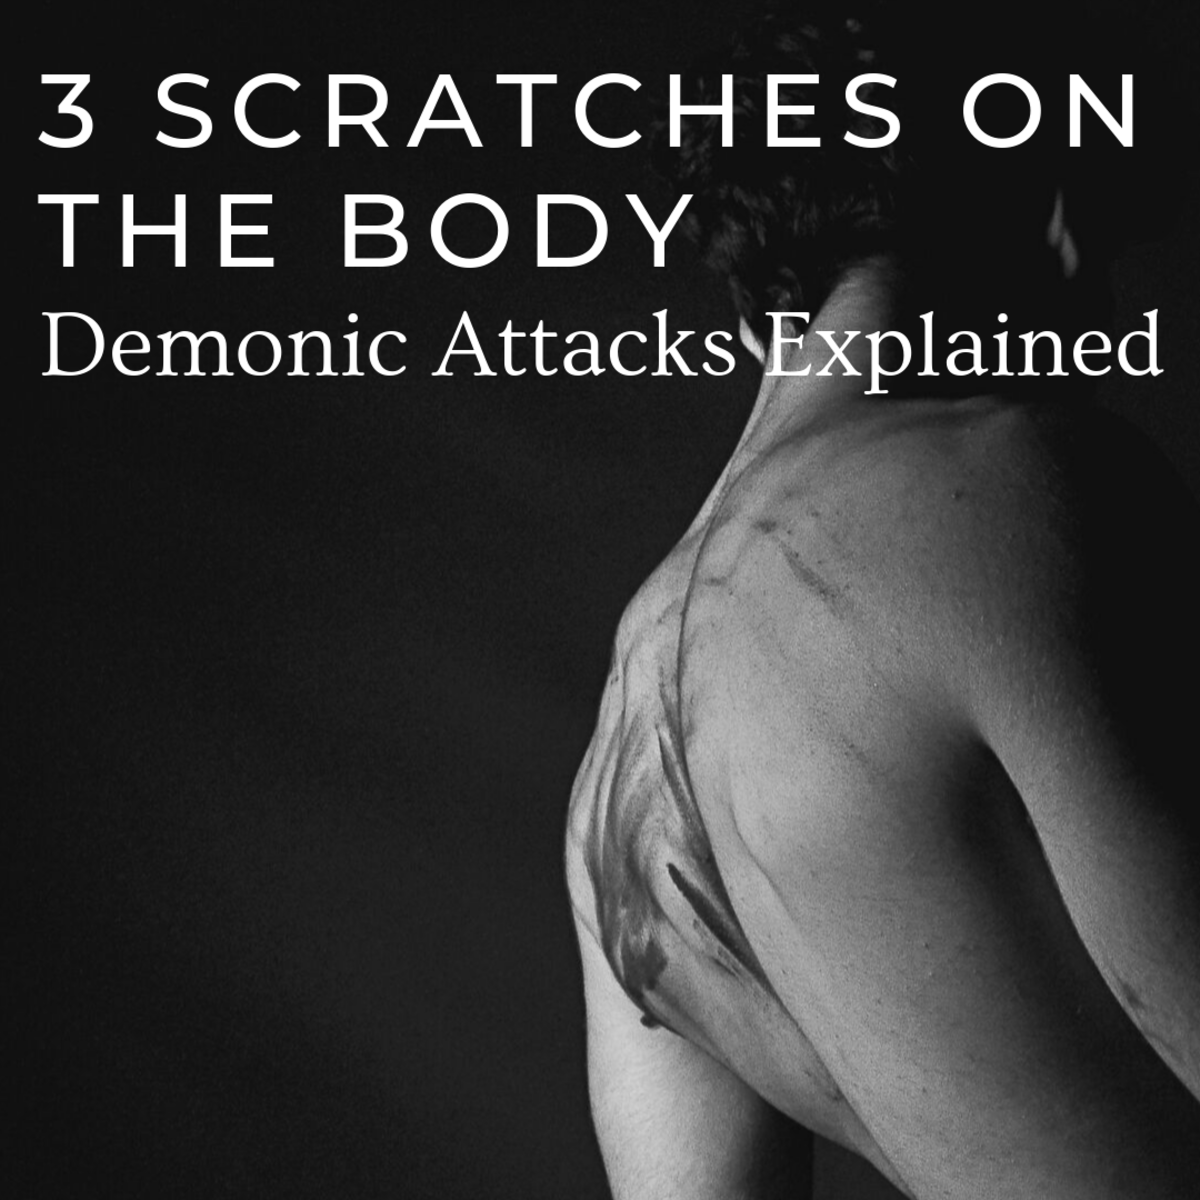 The Meaning of 3 Scratches on the Body